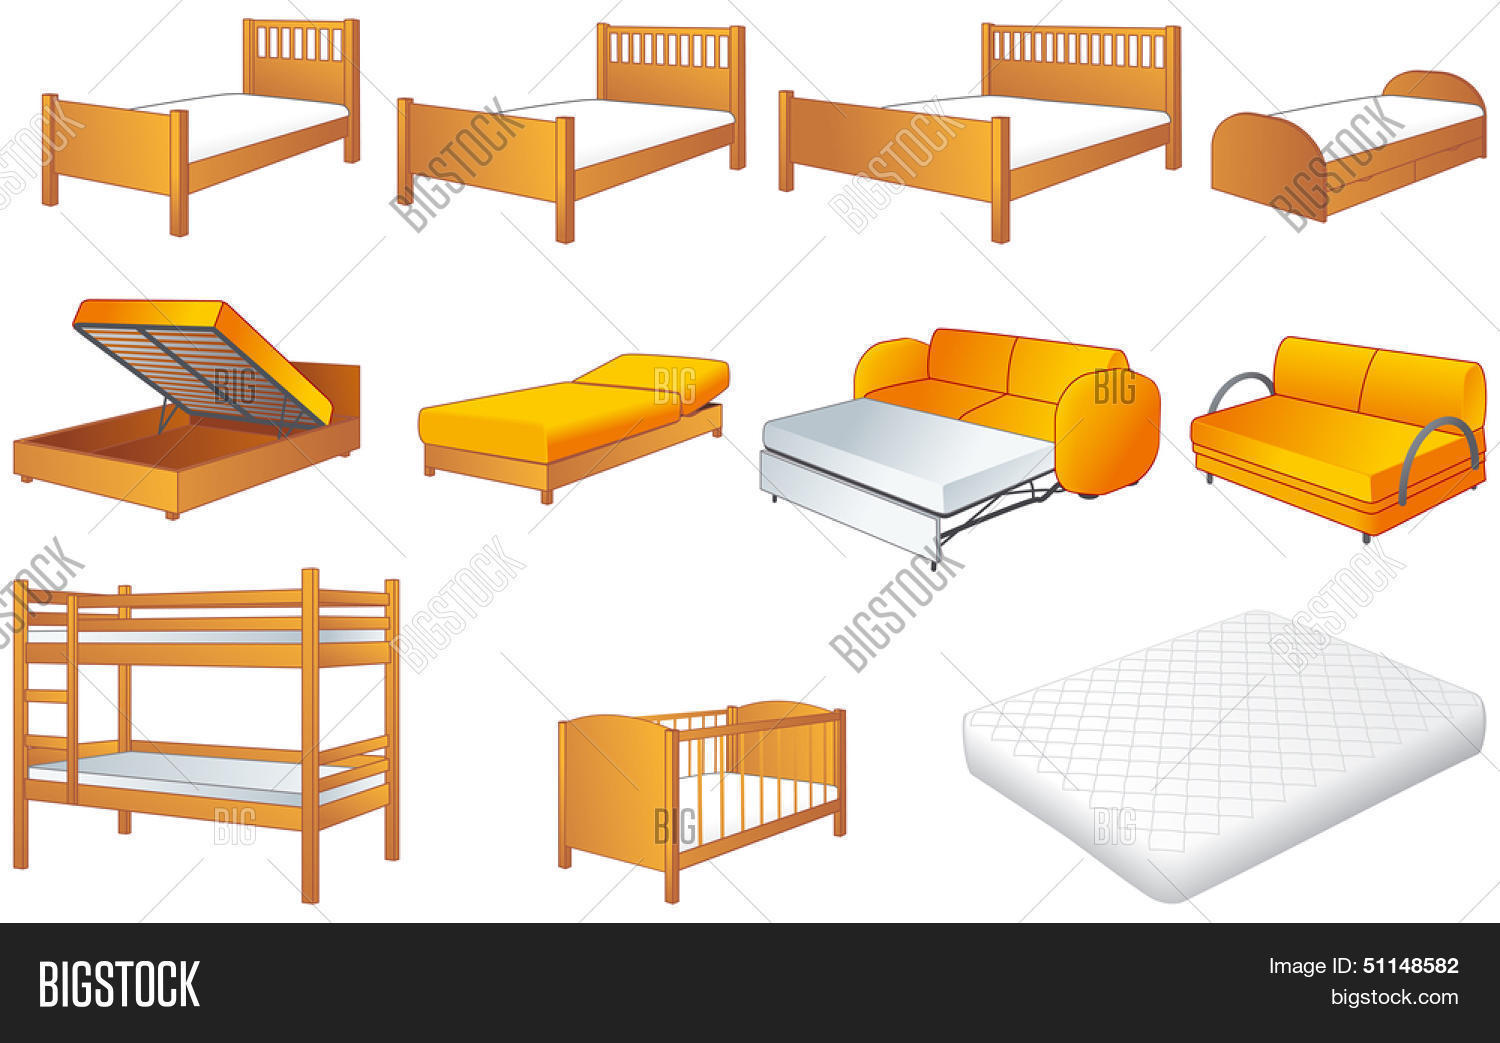 Various Bedroom Furniture: Bed, Cot, Couch With Adjustable Back, Sofa,  Unfolded